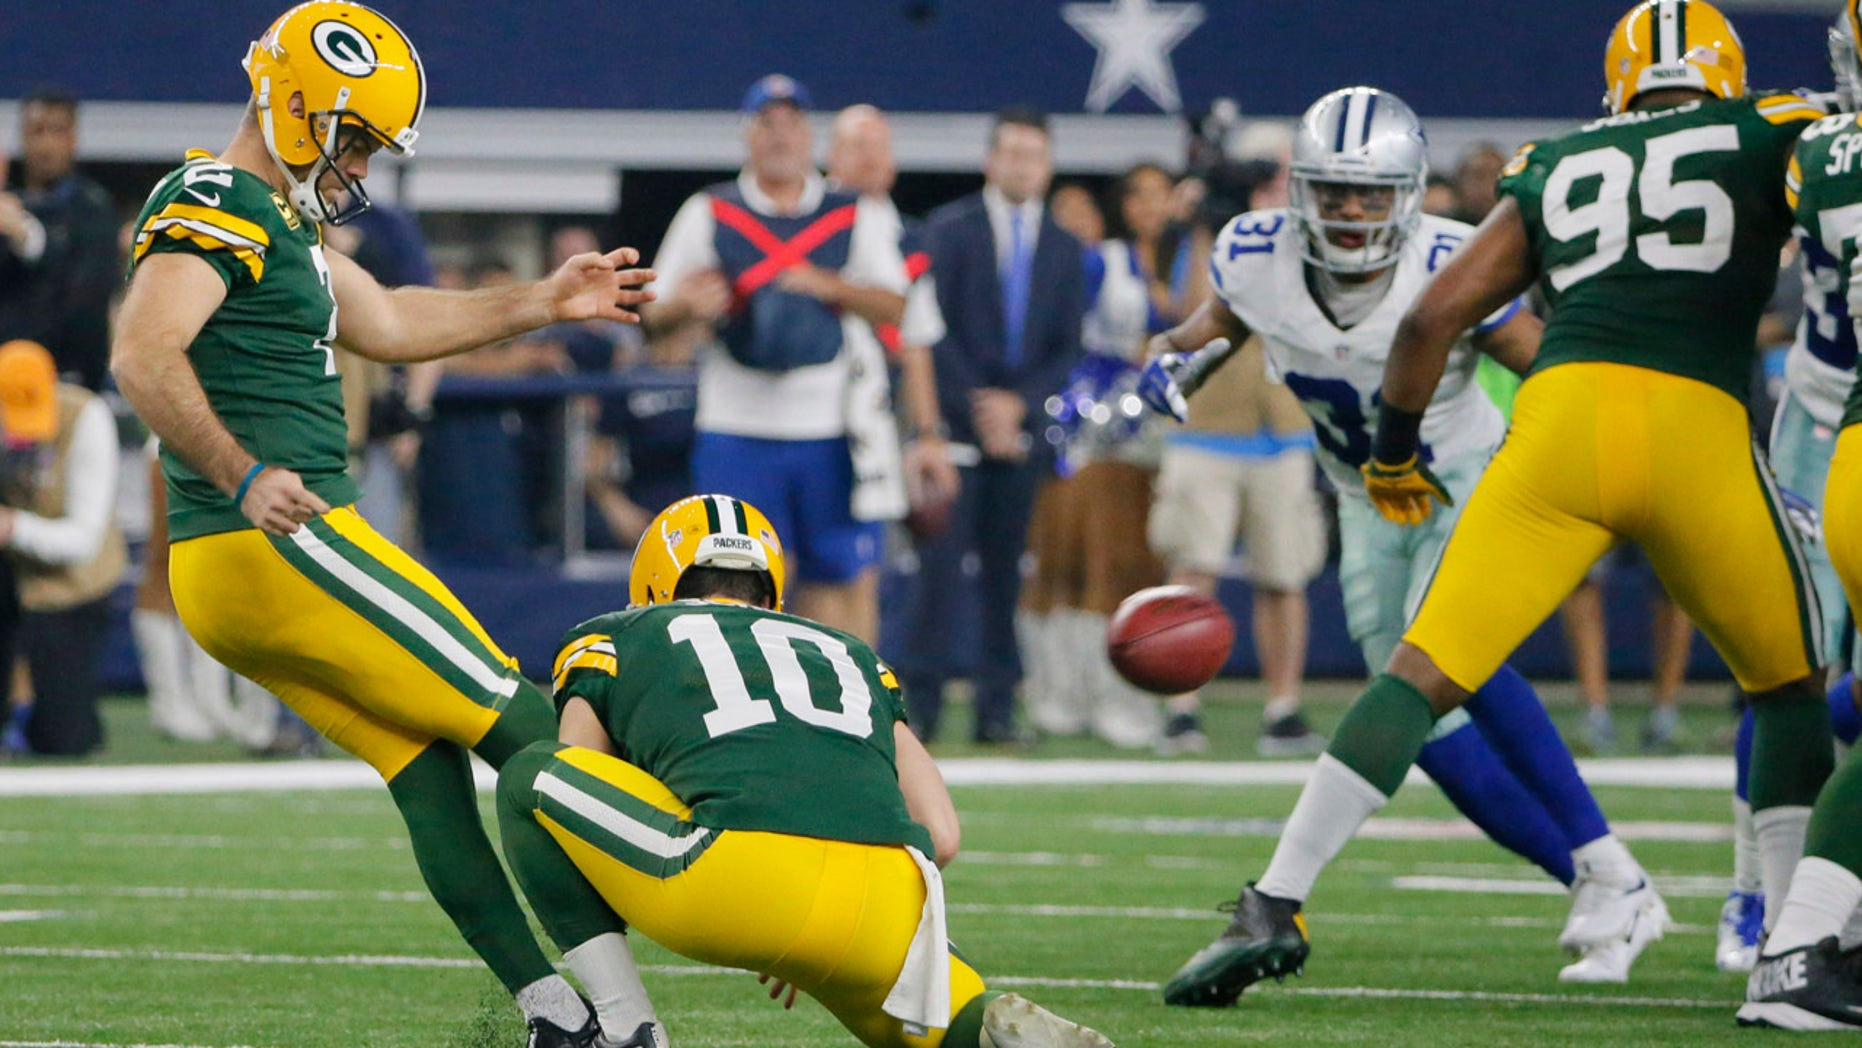 Jan. 15, 2017: Green Bay Packers kicker Mason Crosby (2) kicks a 56-yard field goal against the Dallas Cowboys during the second half of an NFL divisional playoff football game in Arlington, Texas